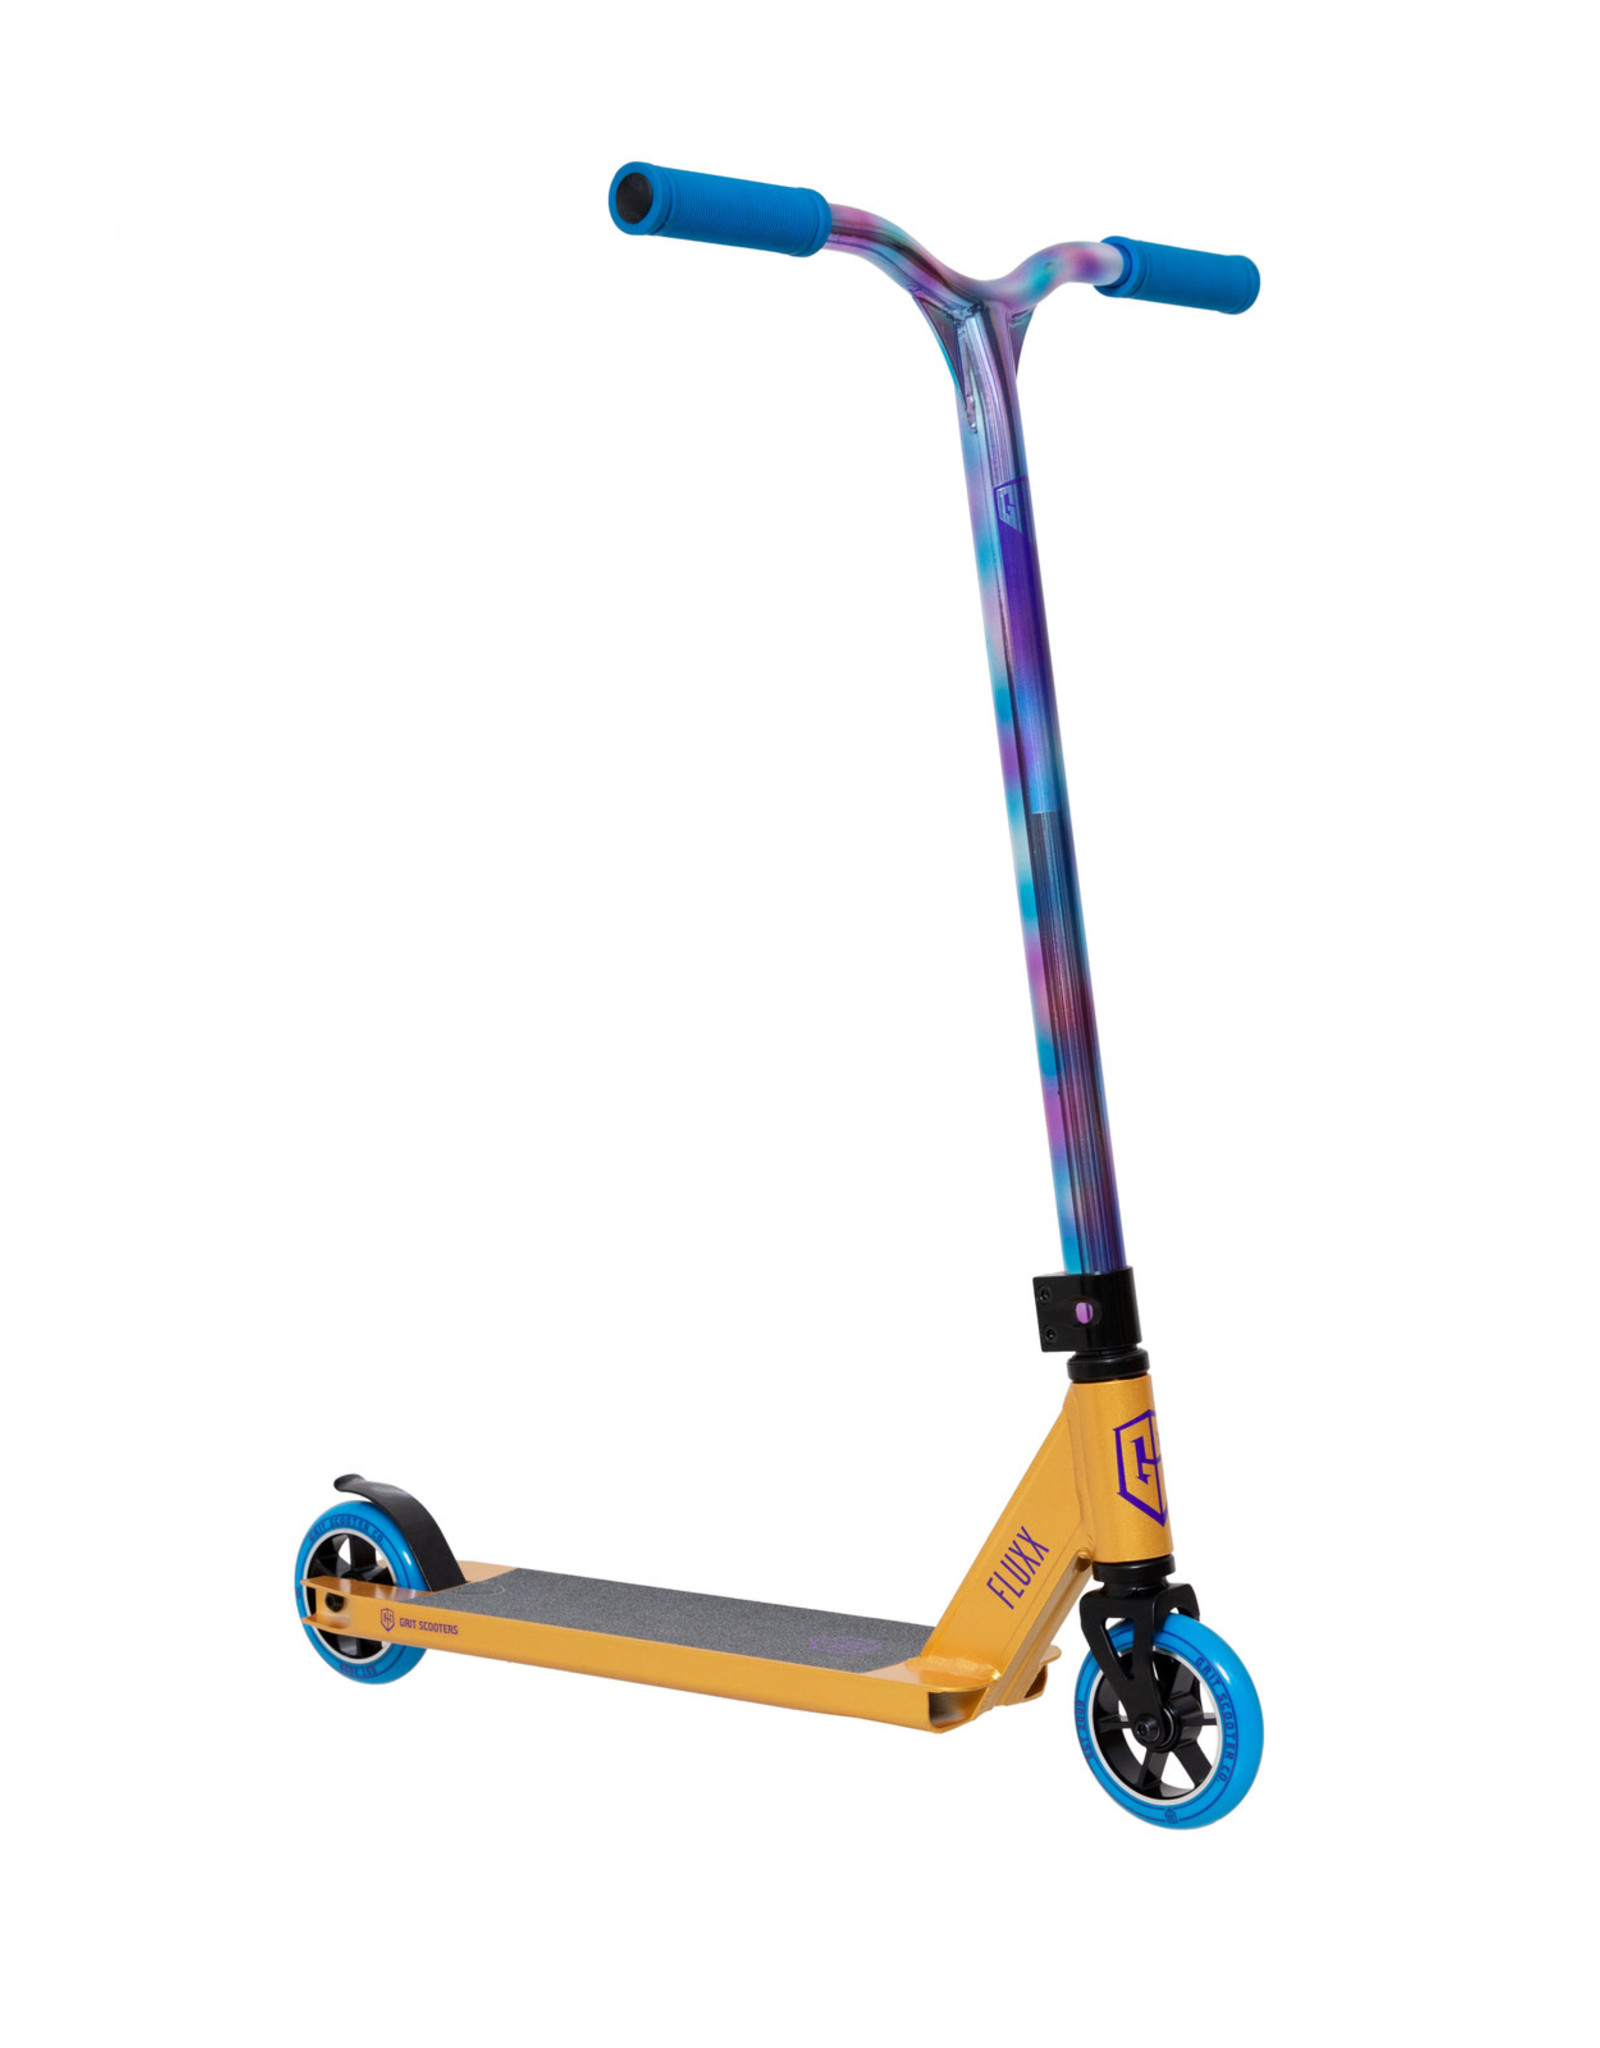 GRIT Grit Fluxx 2021 Gold / Neo Painted Scooter